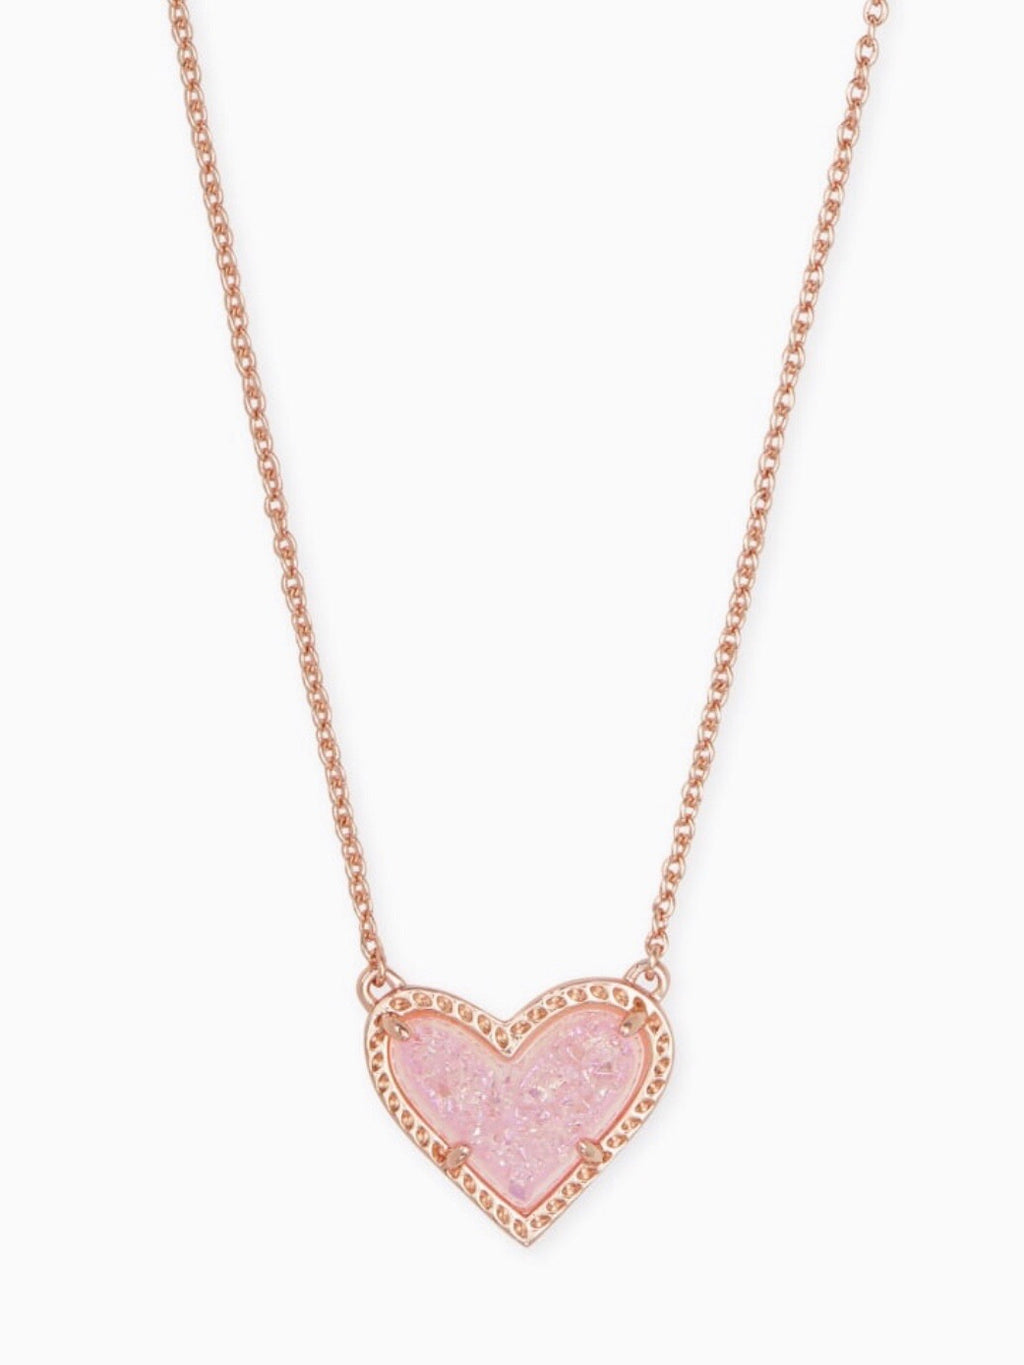 Kendra Scott Heart Necklace- Pink Drusy